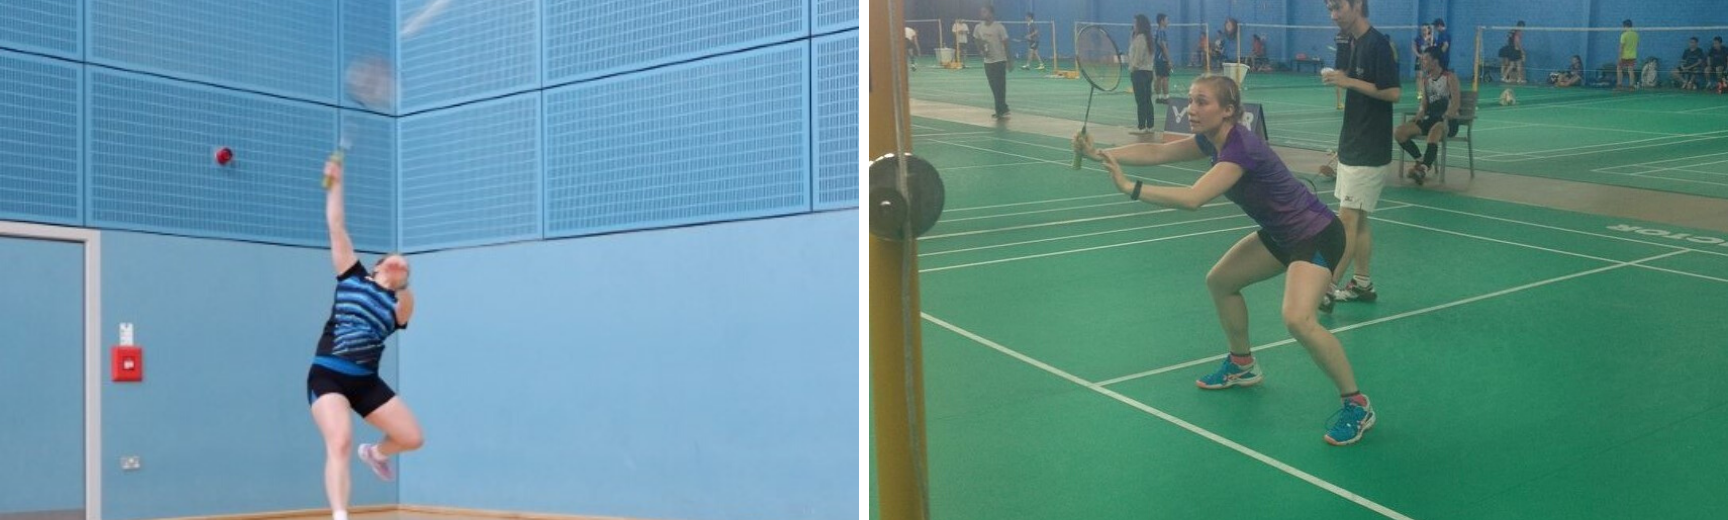 Two images of Philippa playing badminton